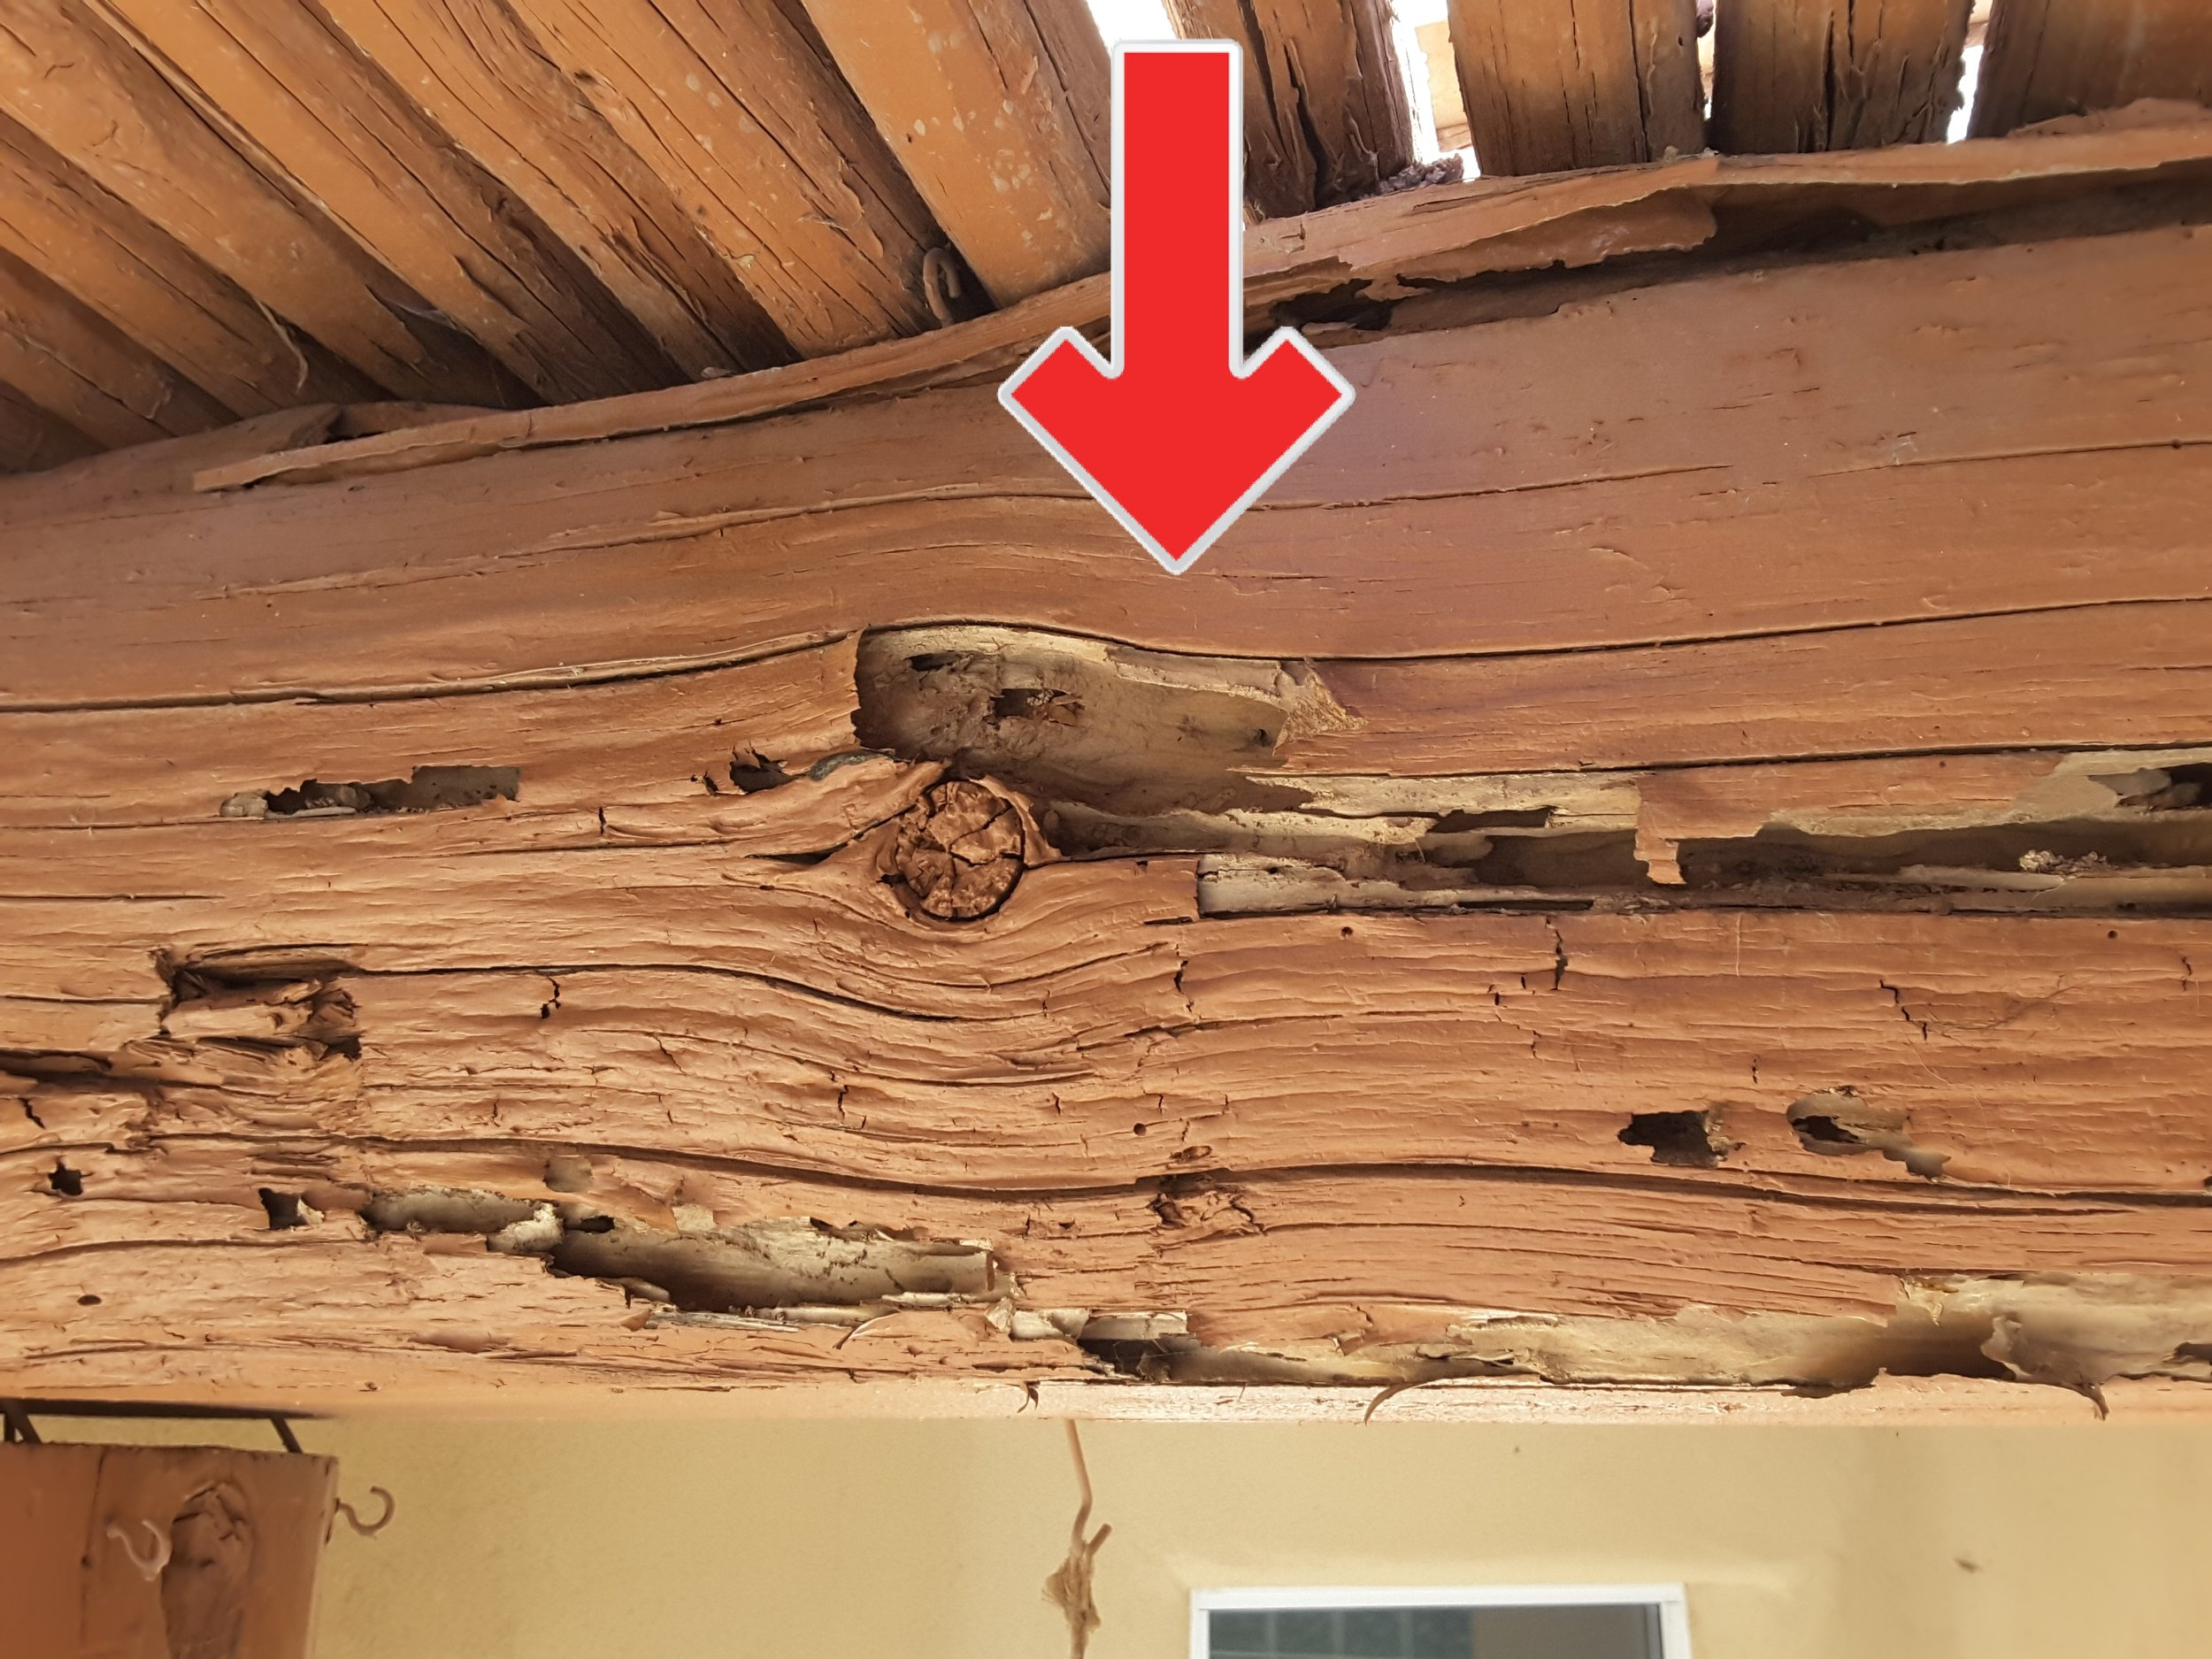 A large portion of this beam has been hollowed out by termites. A termite inspection is highly recommended on all homes before purchase.